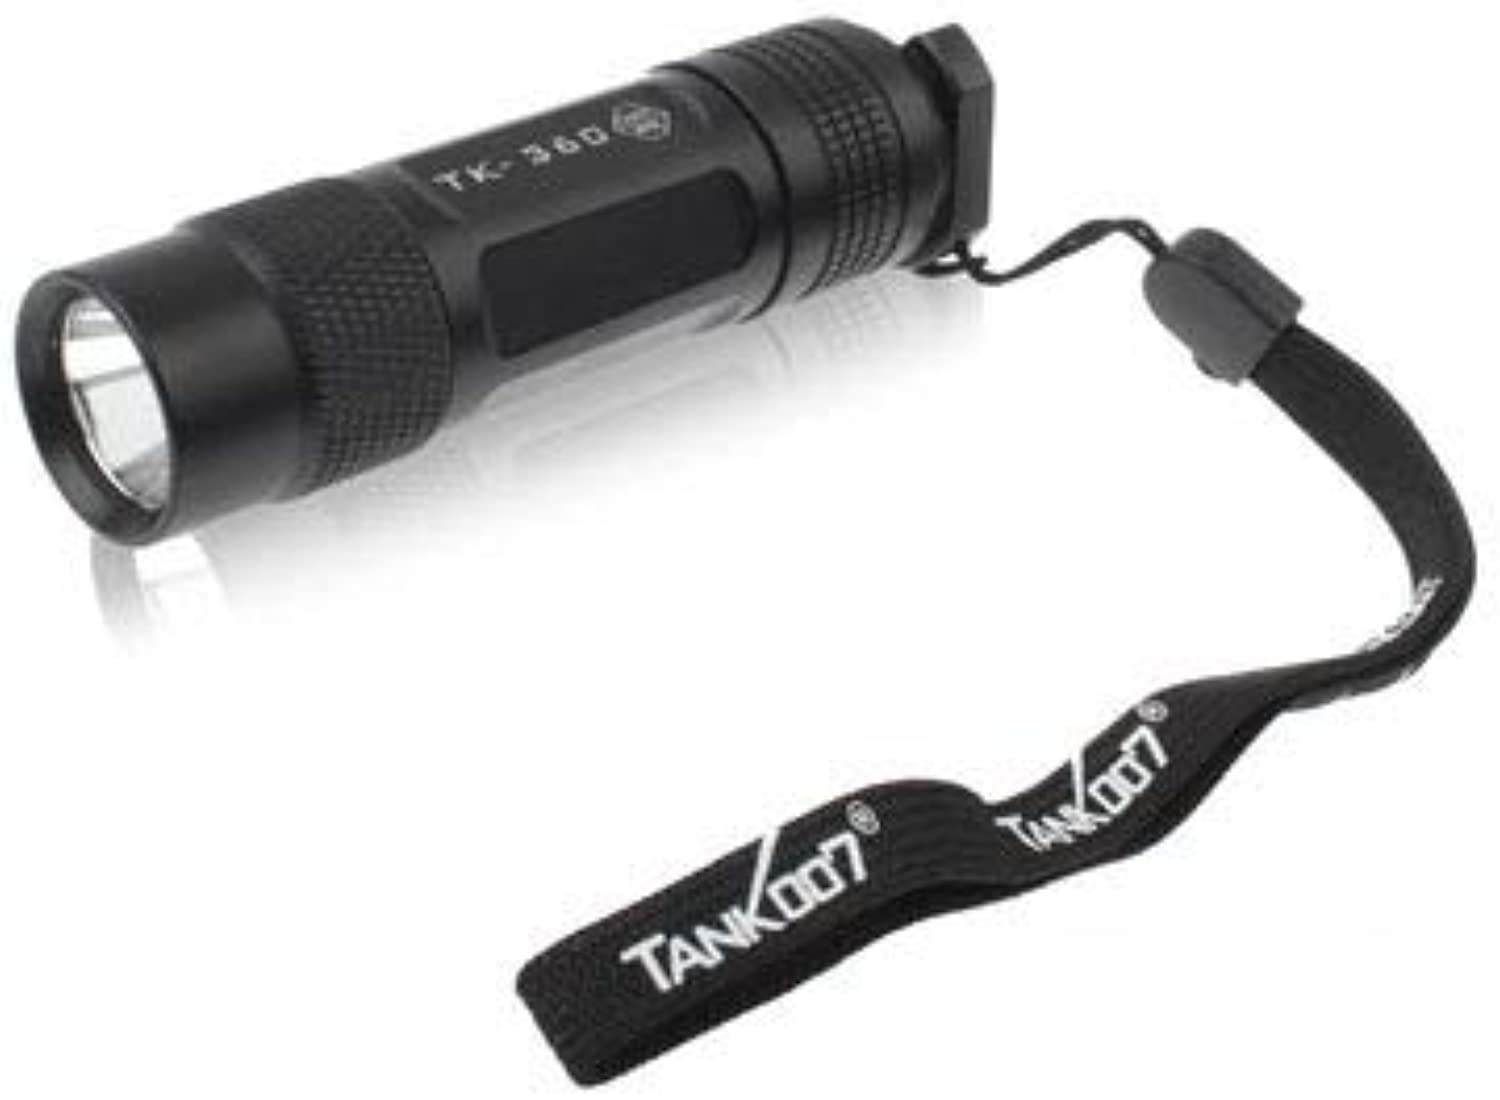 Portable Sturdy Durable Tank007 TK360 XRE Q5 CREE 5Mode 160lm Flashlight Easy to use